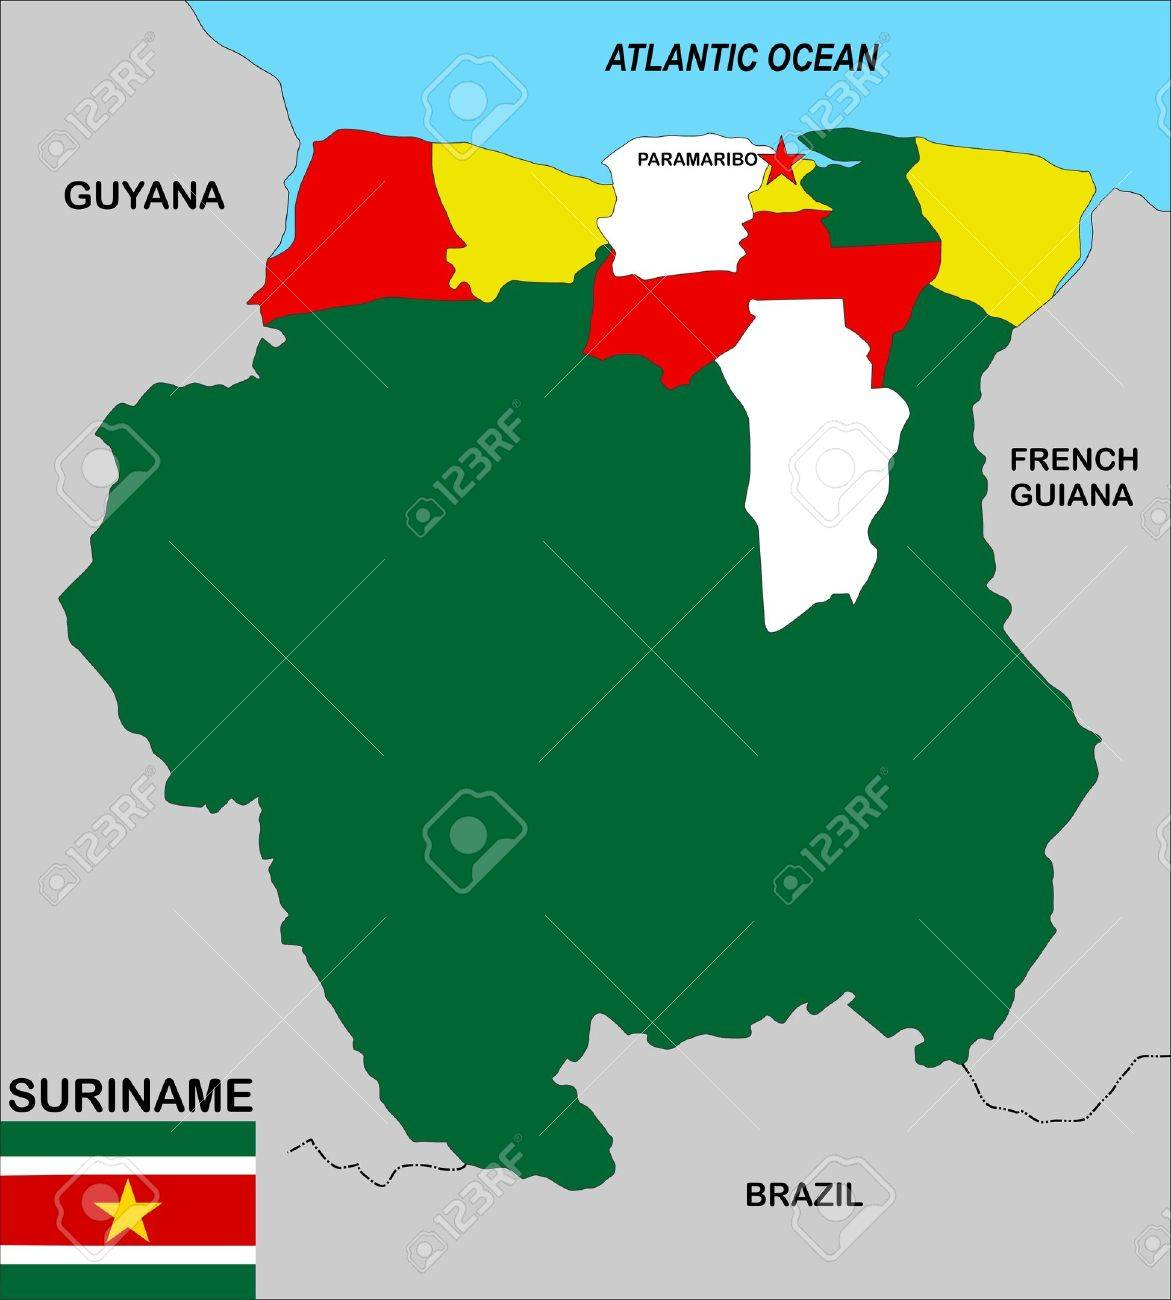 Very Big Size Suriname Political Map Illustration Stock Photo